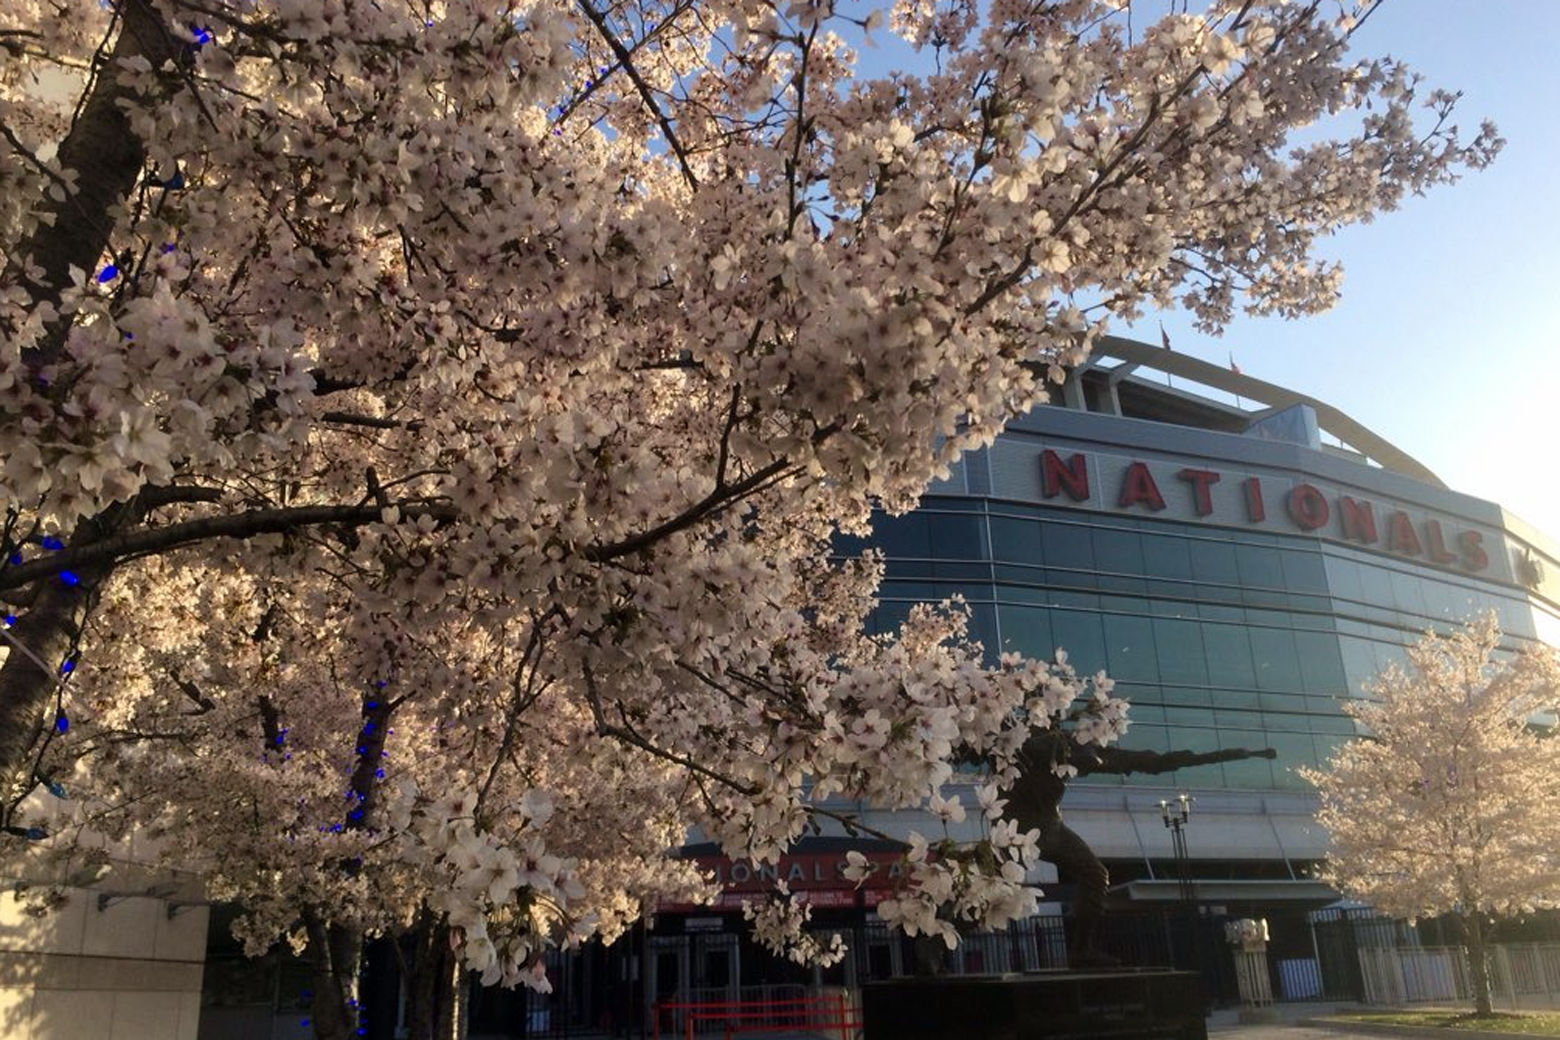 Cherry blossoms bloom outside Nationals Park Thursday ahead of the Nats' home opener against the New York Mets. (WTOP/Nick Iannelli)